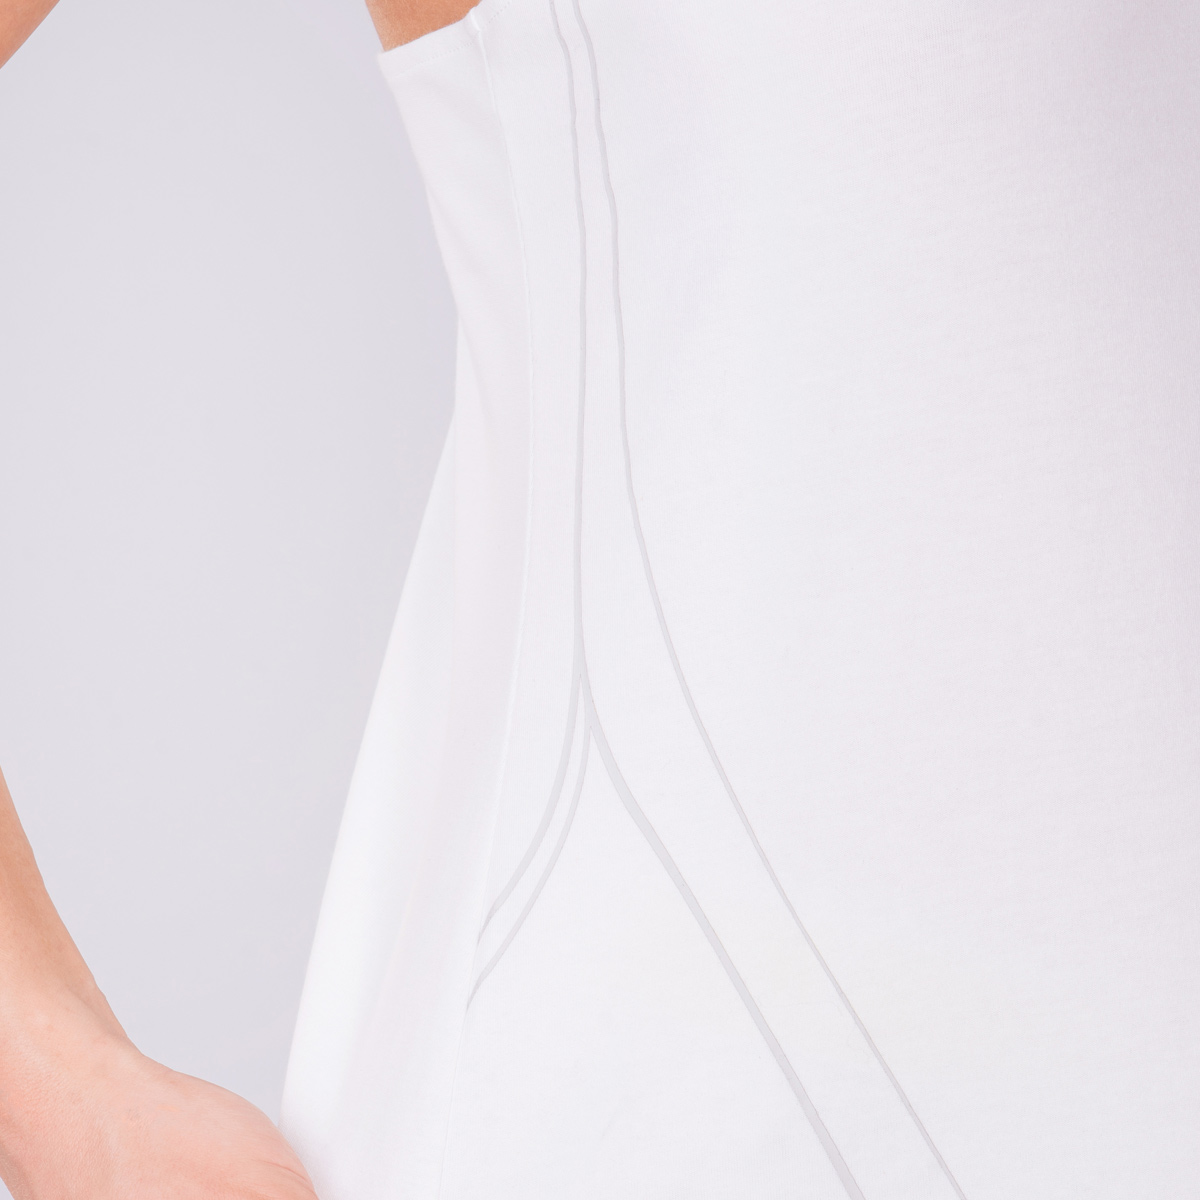 Activewear Cotton Touch Tank Top Y Back for Women in White | Gym Aesthetics